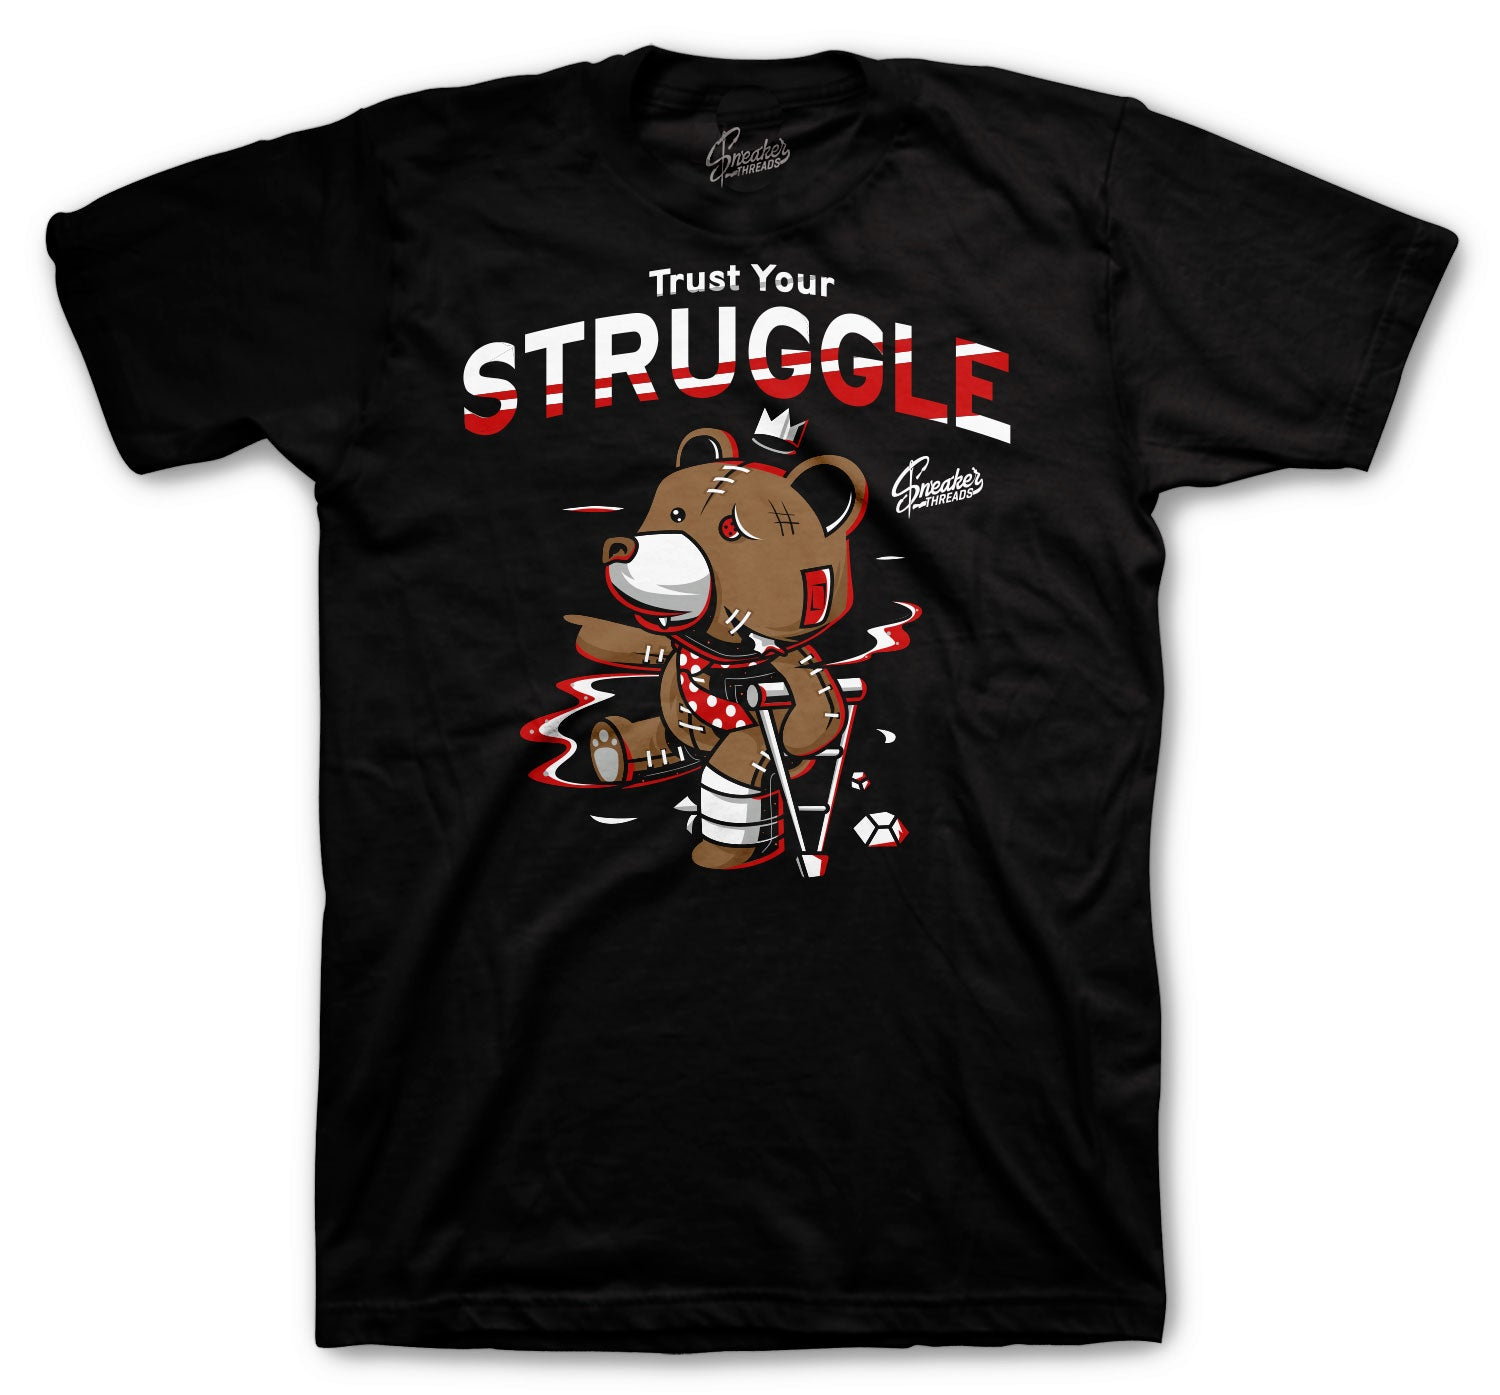 Jordan 6 Carmine Trust Your Struggle Shirt